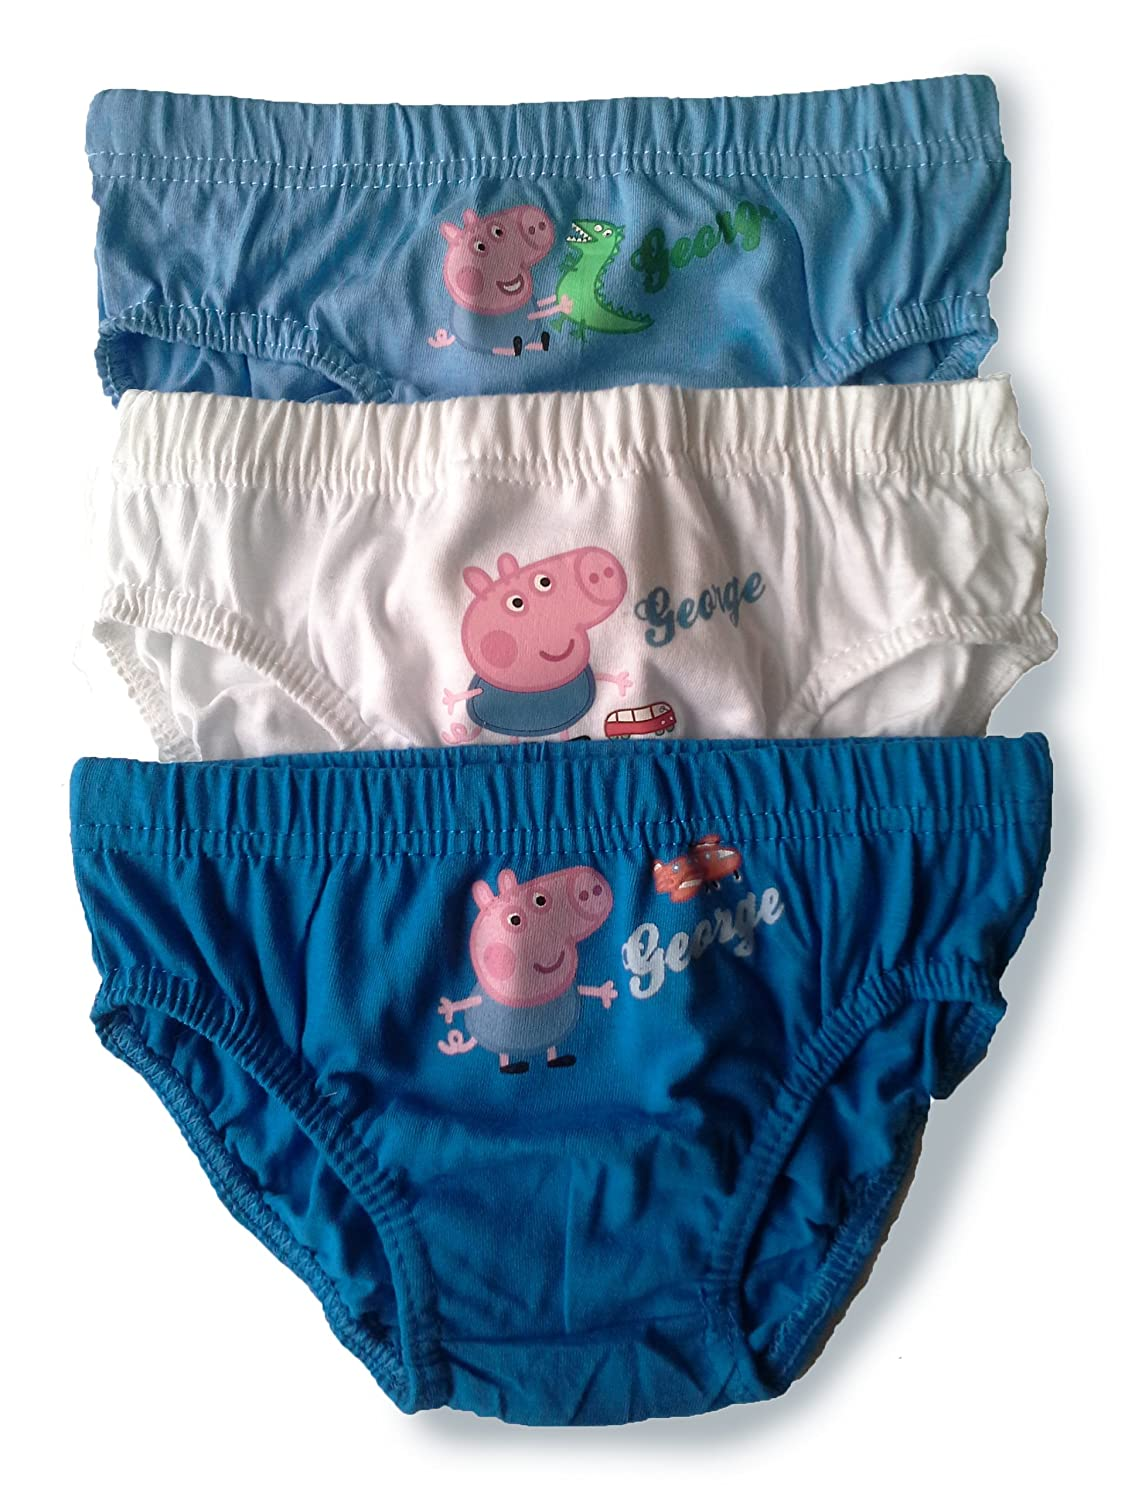 Boys Peppa Pig George Pants Briefs Underpants Underwear Slips - 3 Pack - Official Licenced 100% Cotton